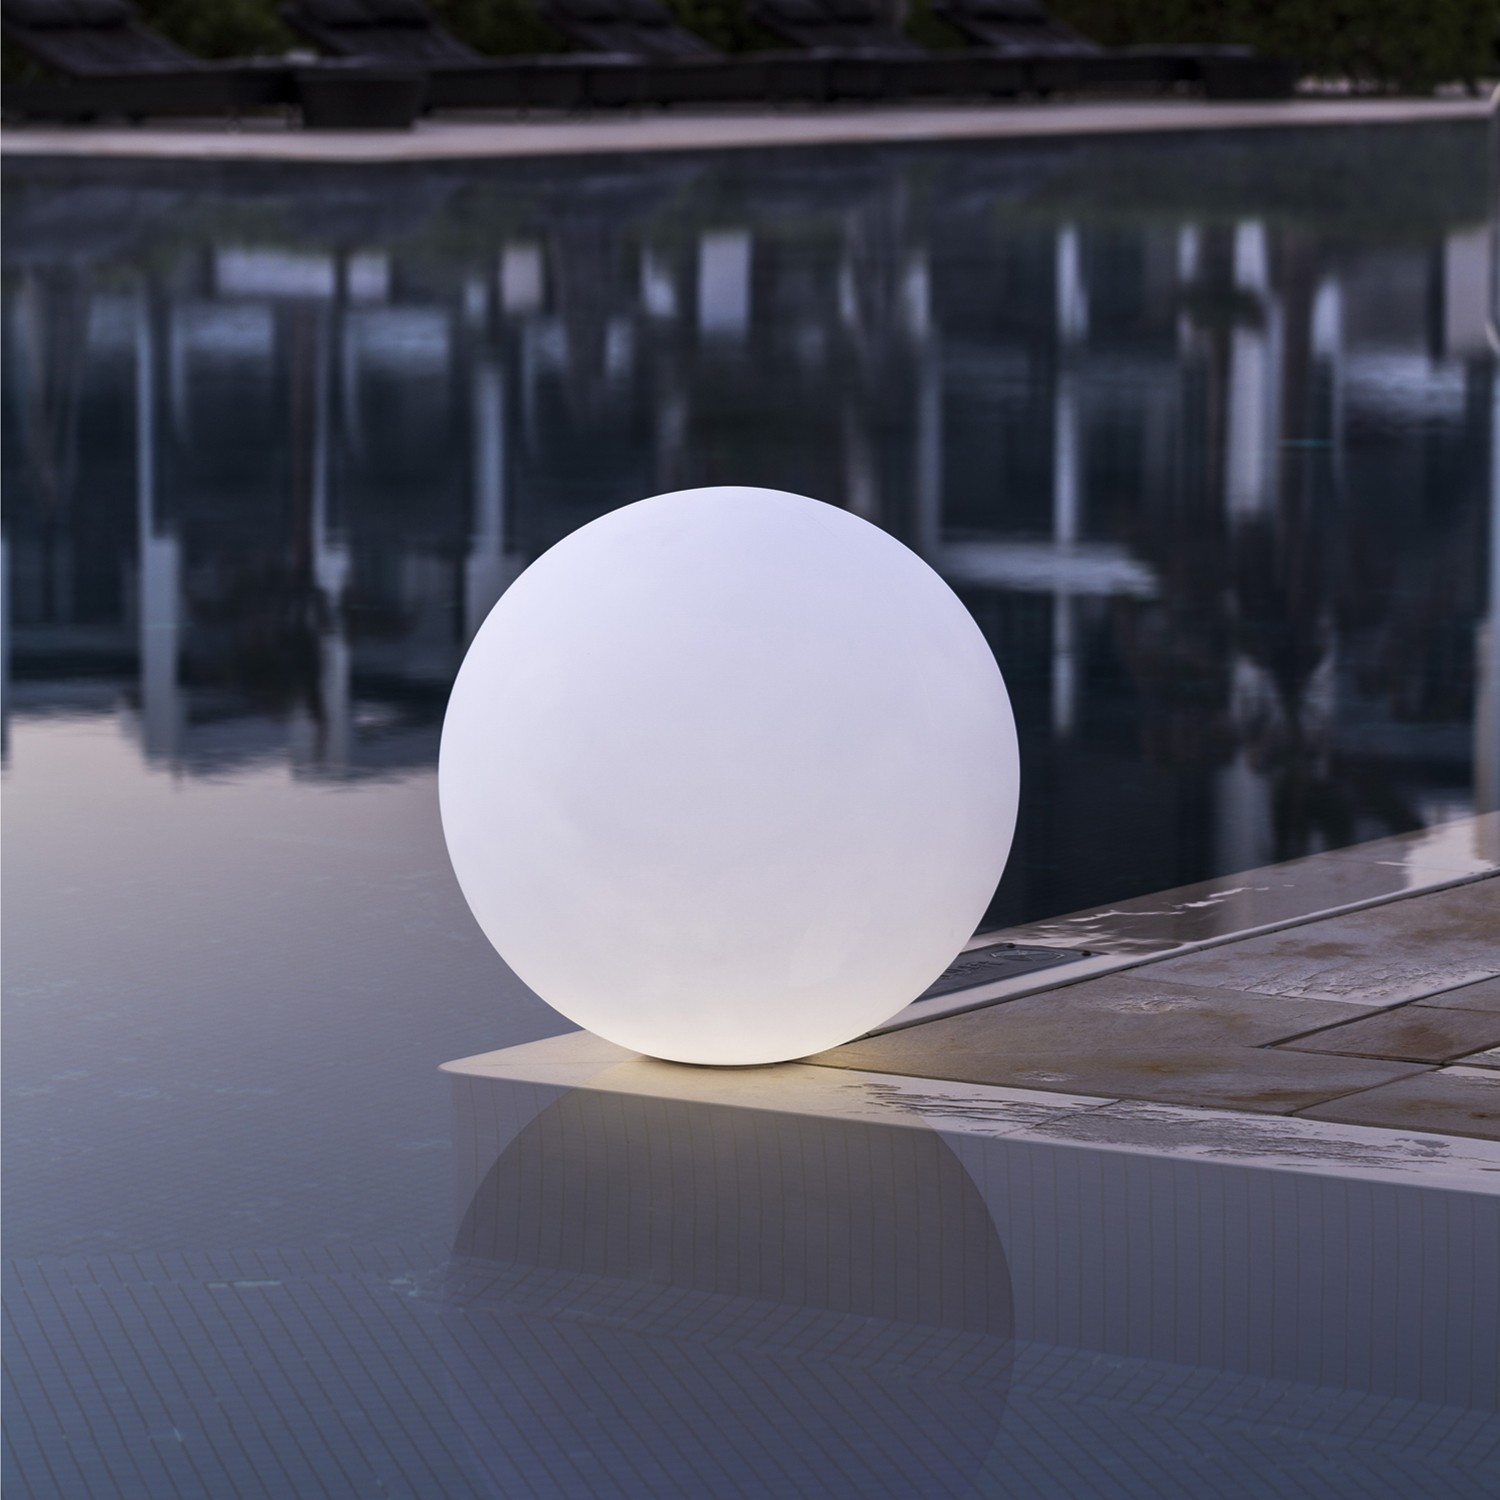 Outdoor globe lights 10 methods to decorate outdoors and at present due to creative needs and requirements of the people there are different types of lights introduced to choose and apply as per the event aloadofball Images